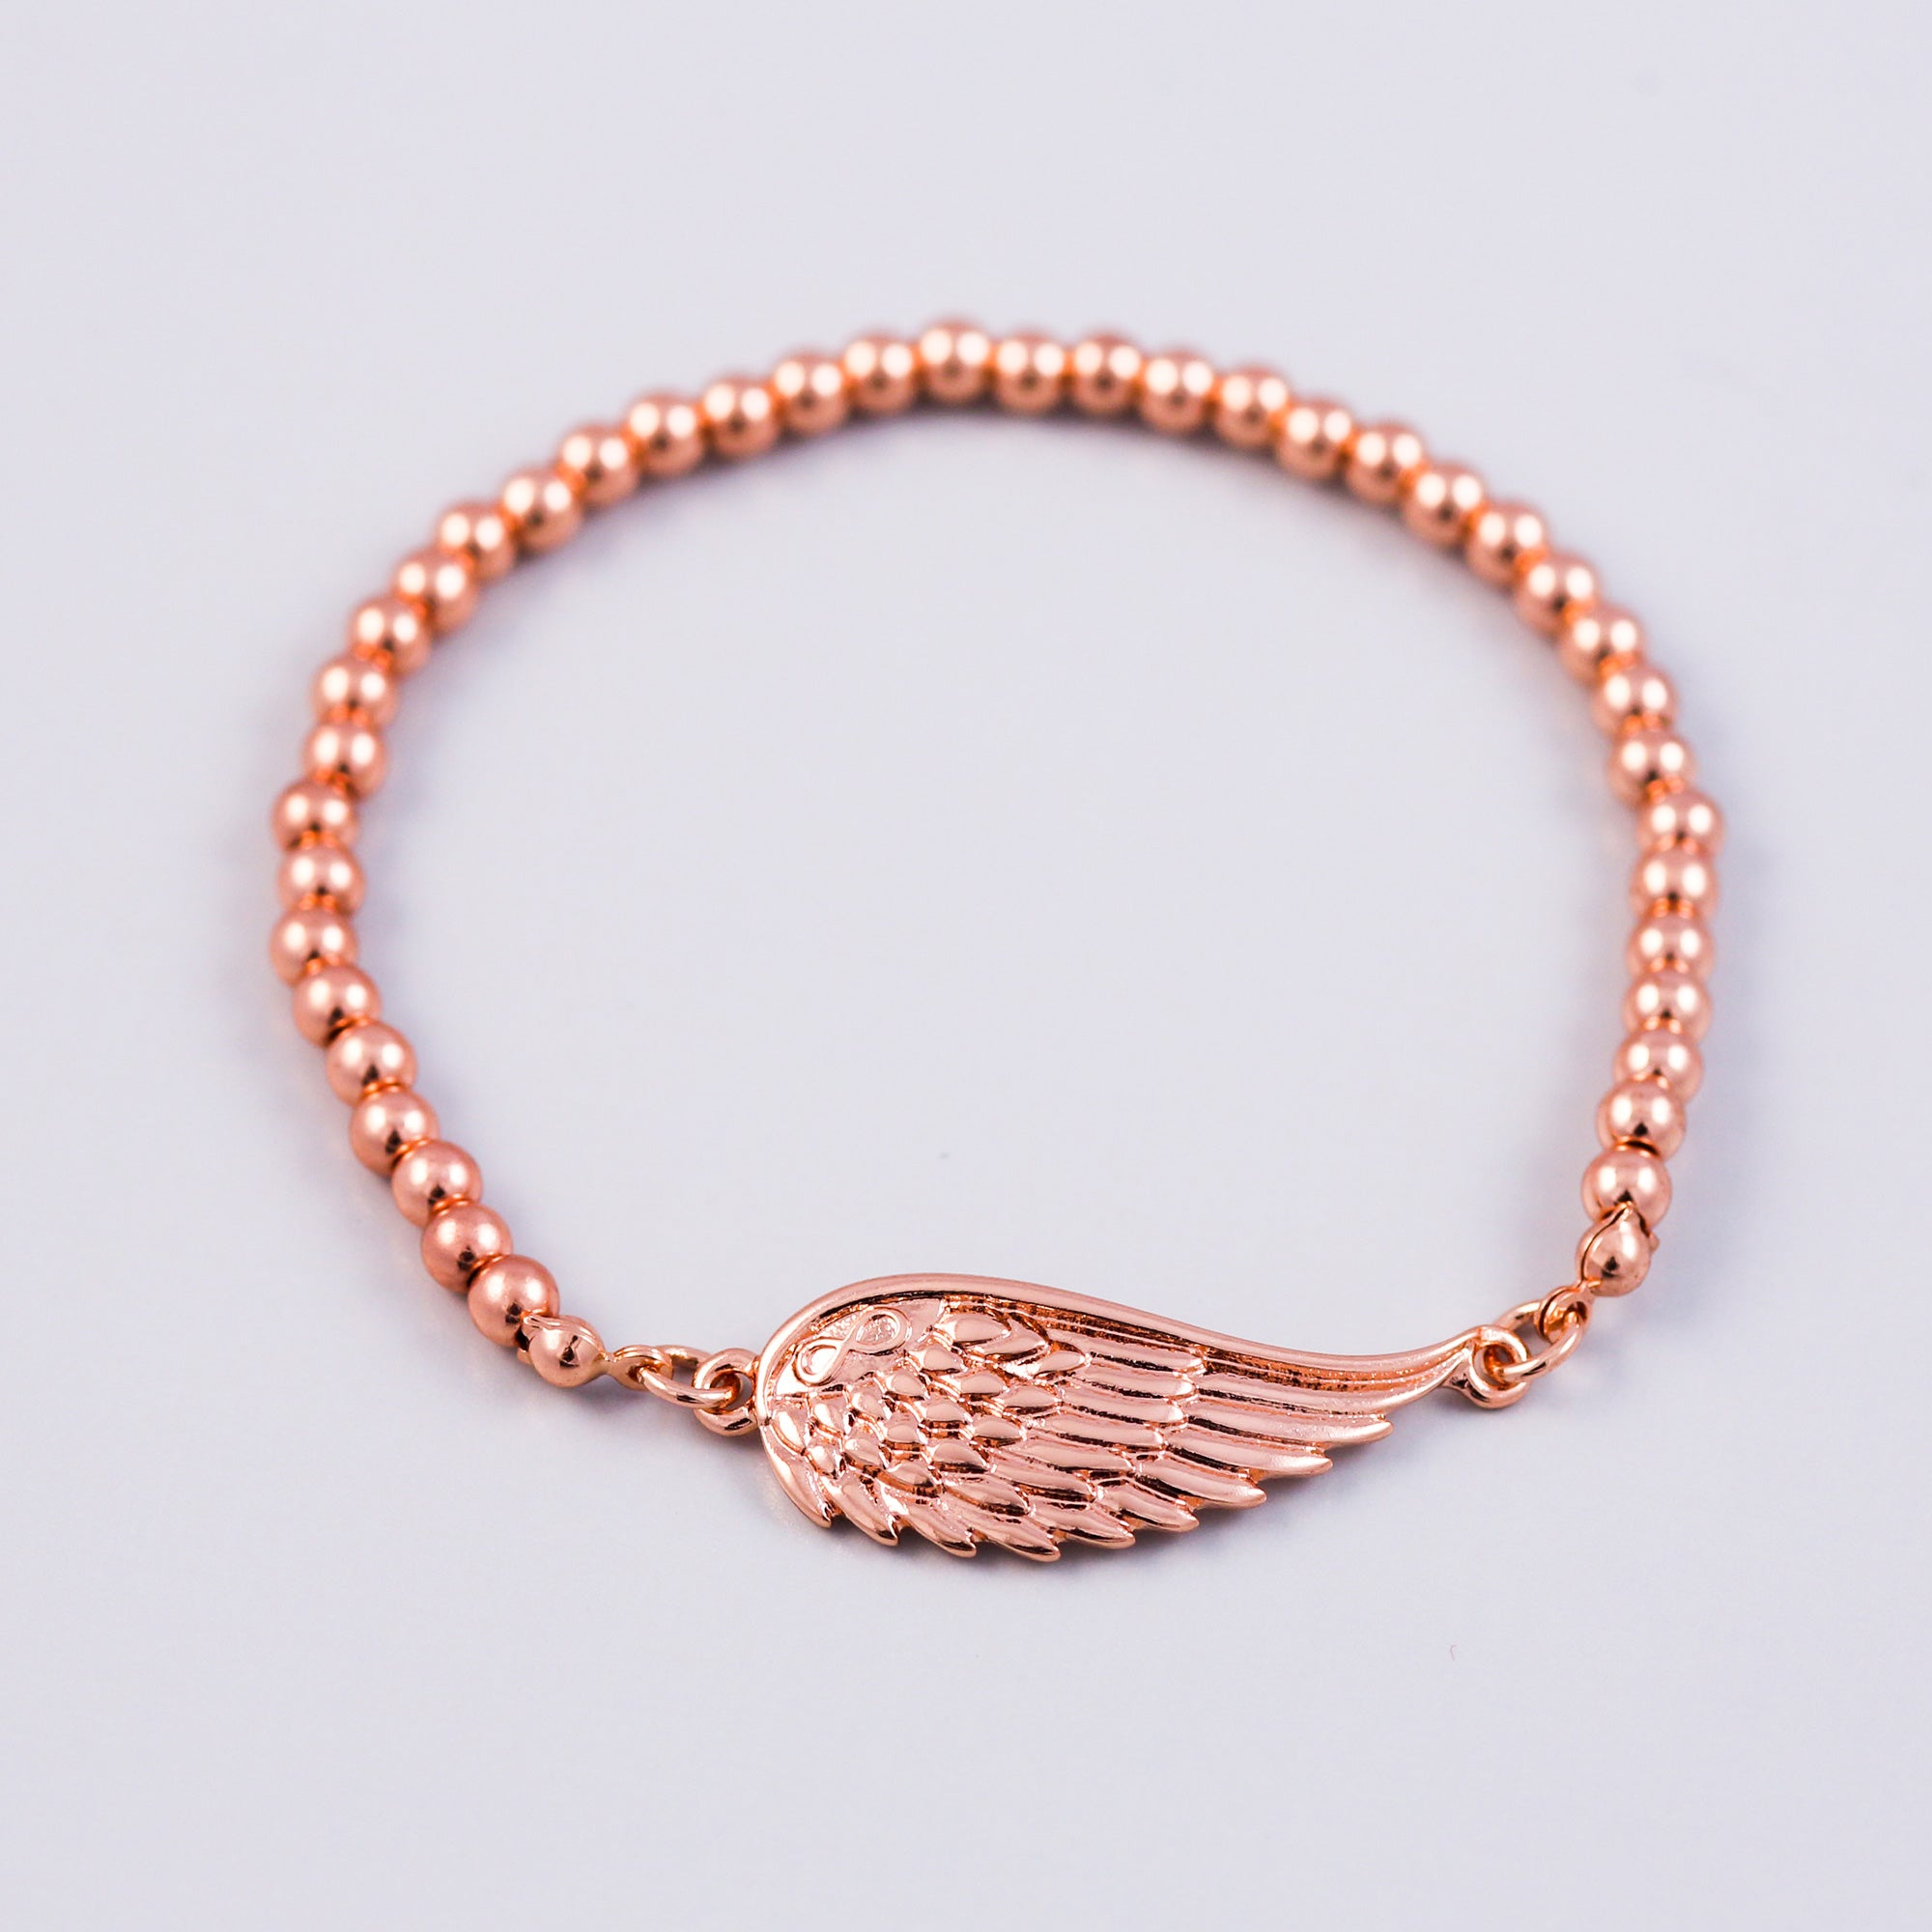 Rose Gold Angel Wing & Metallic Bead Bridal Bracelet